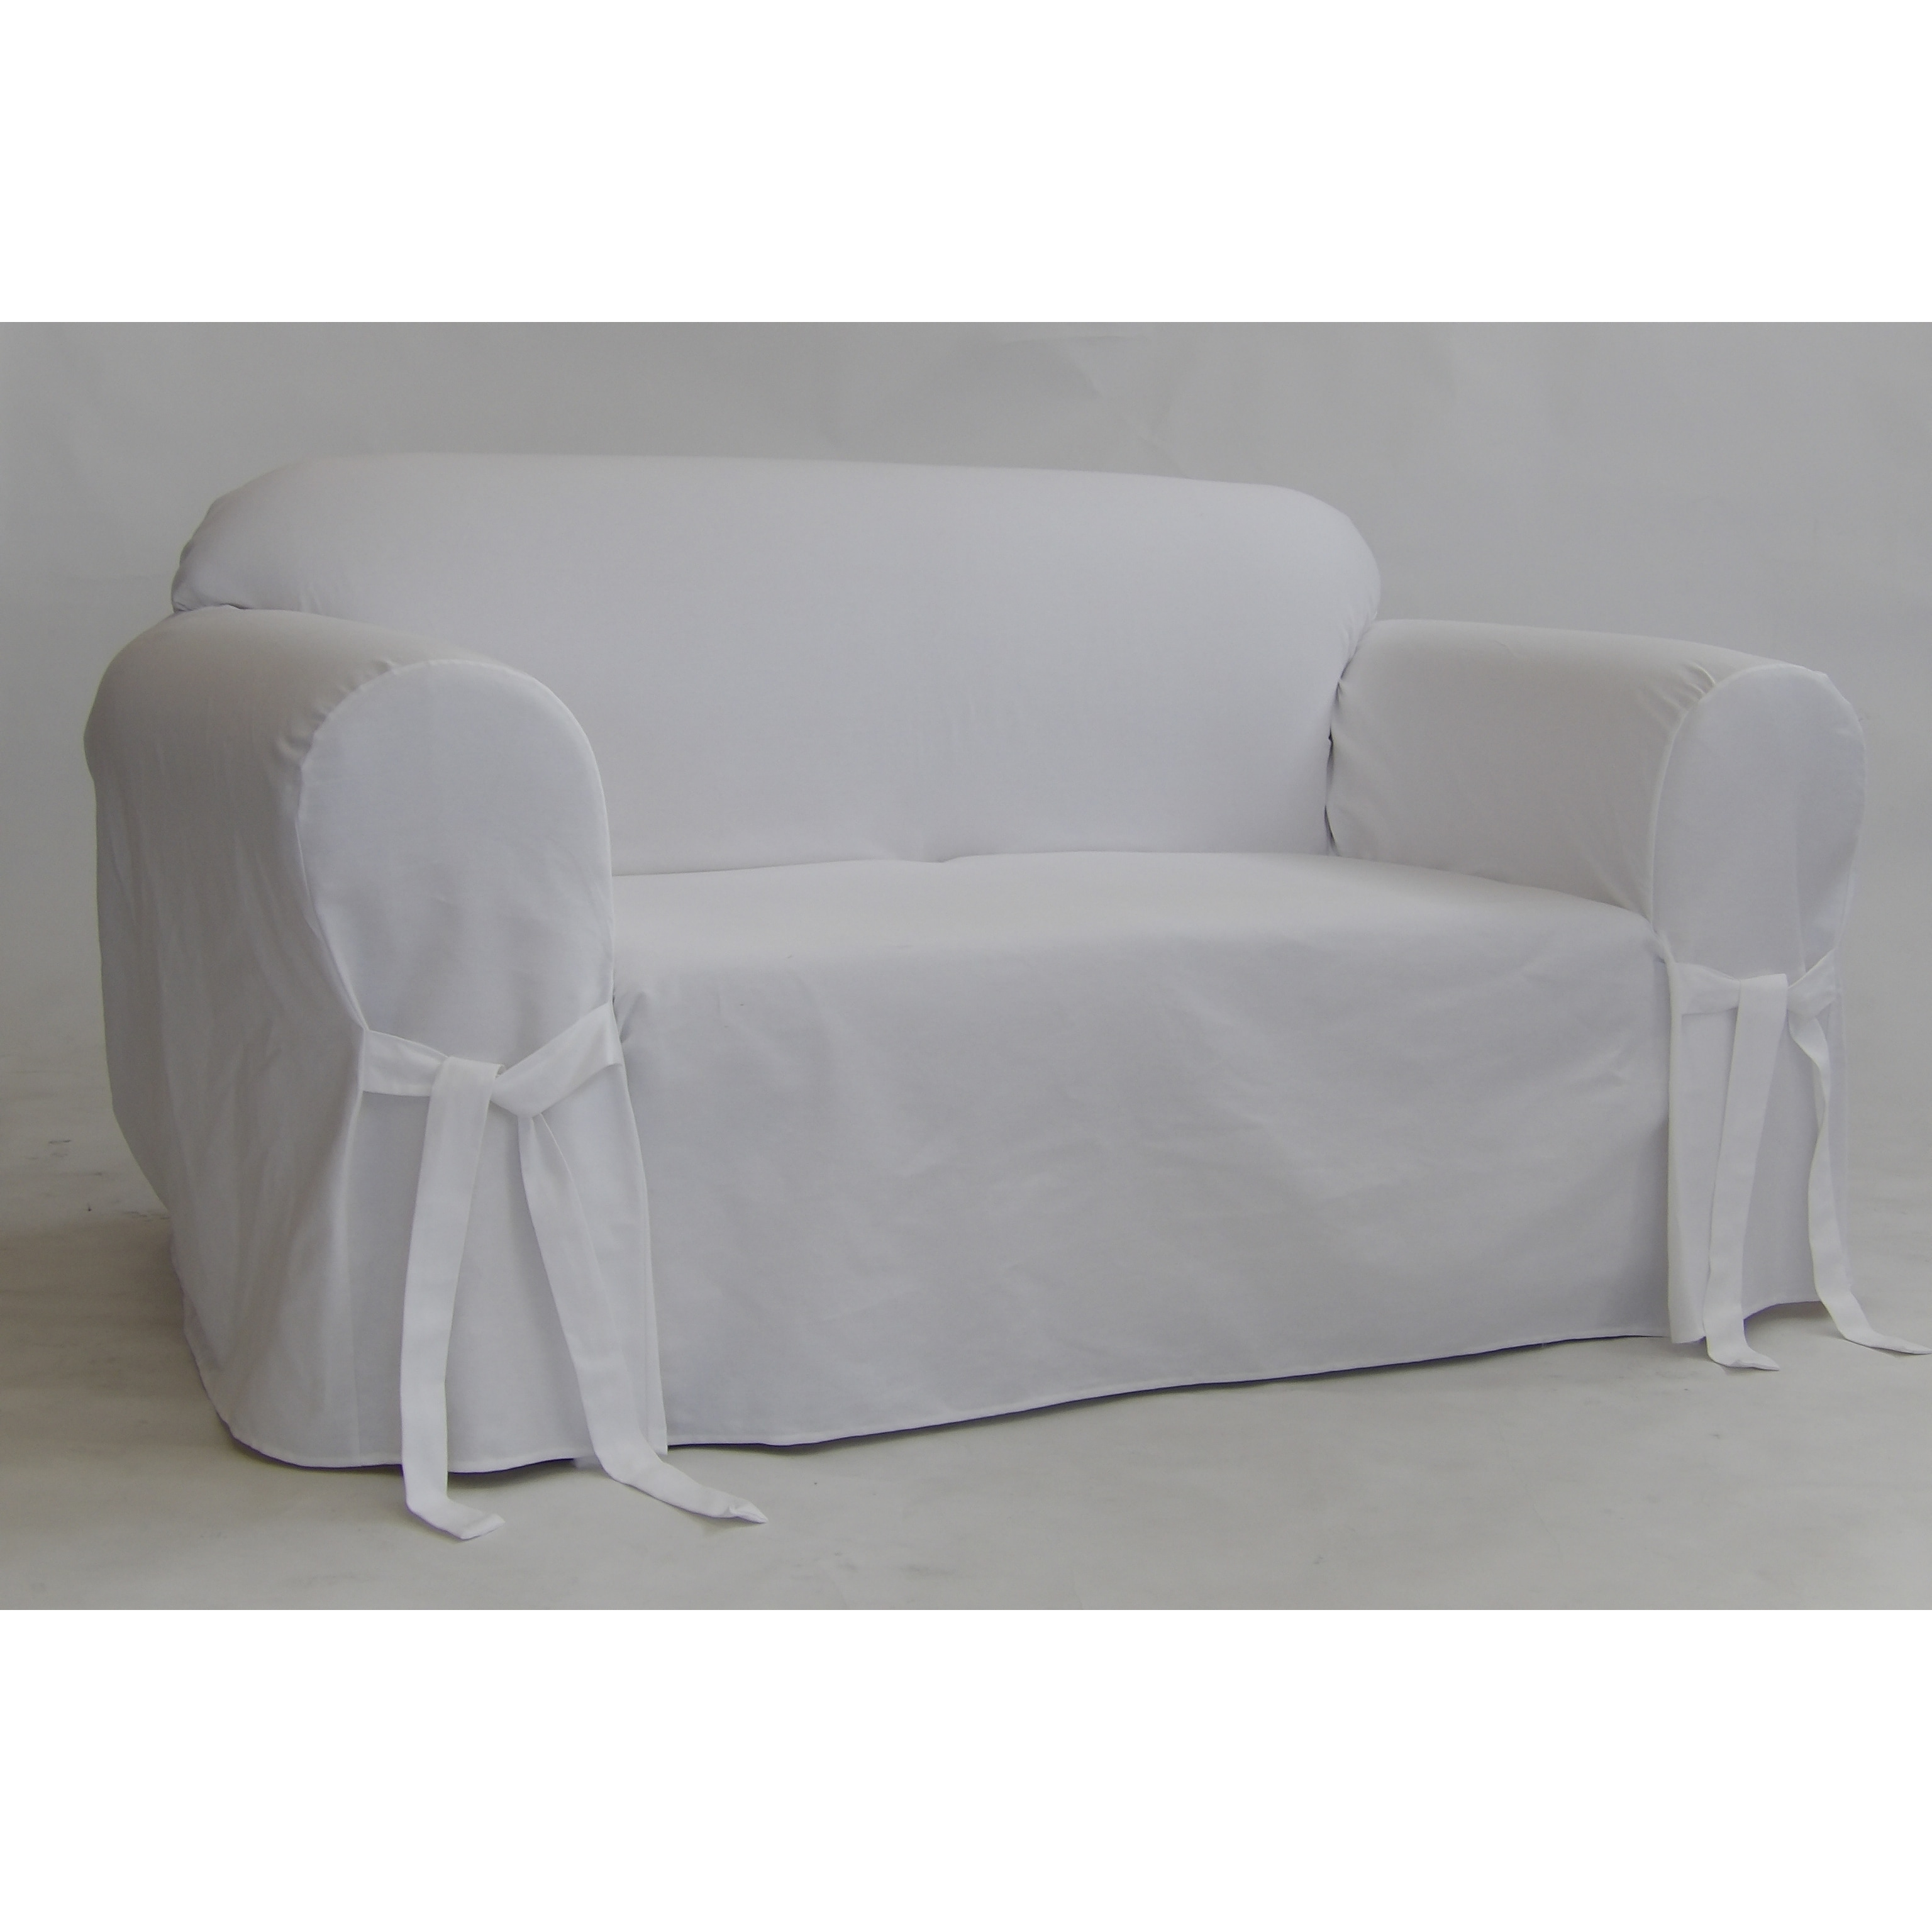 Prime Classic Slipcovers White Twill Loveseat Slipcover Pdpeps Interior Chair Design Pdpepsorg